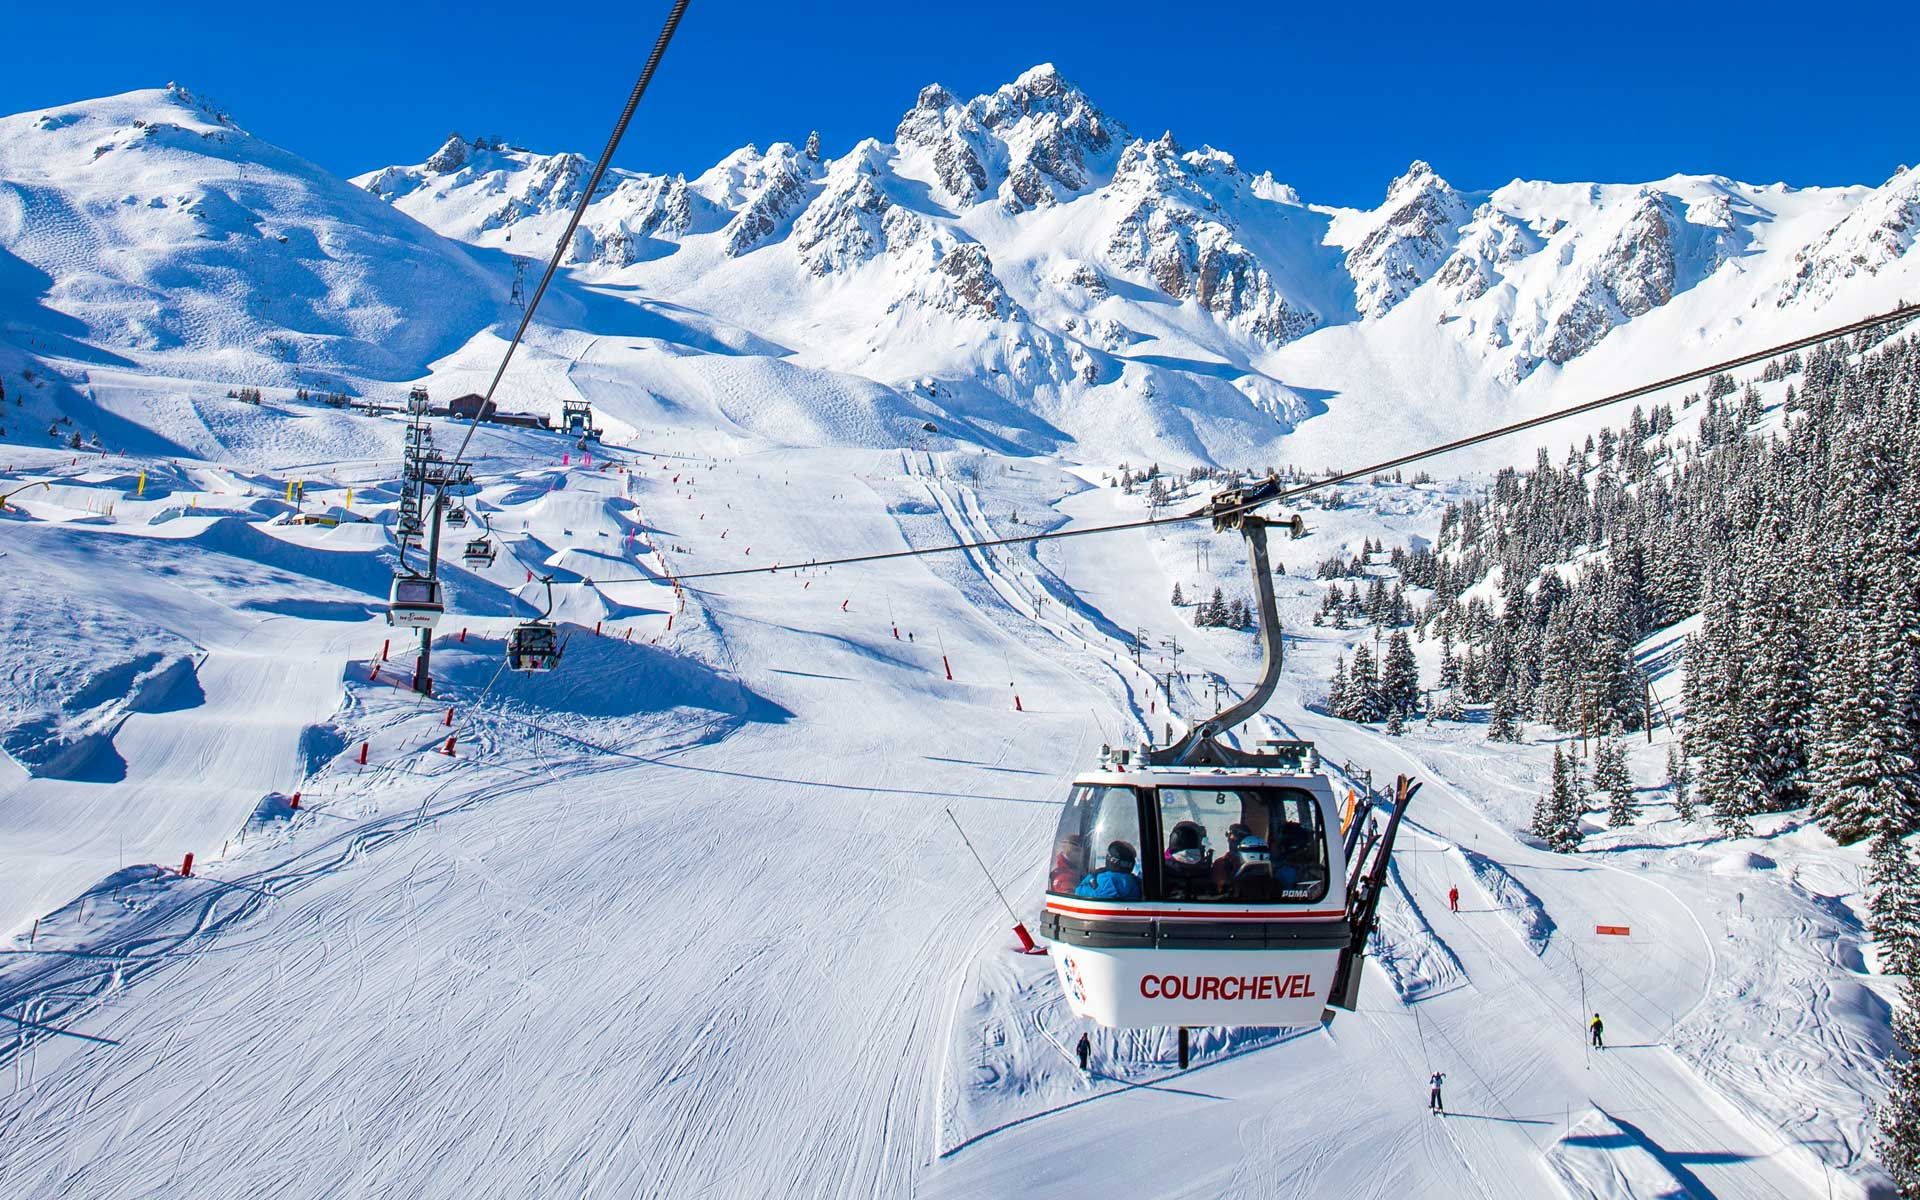 296/Saint Roch/ambiance/courchevel.jpg